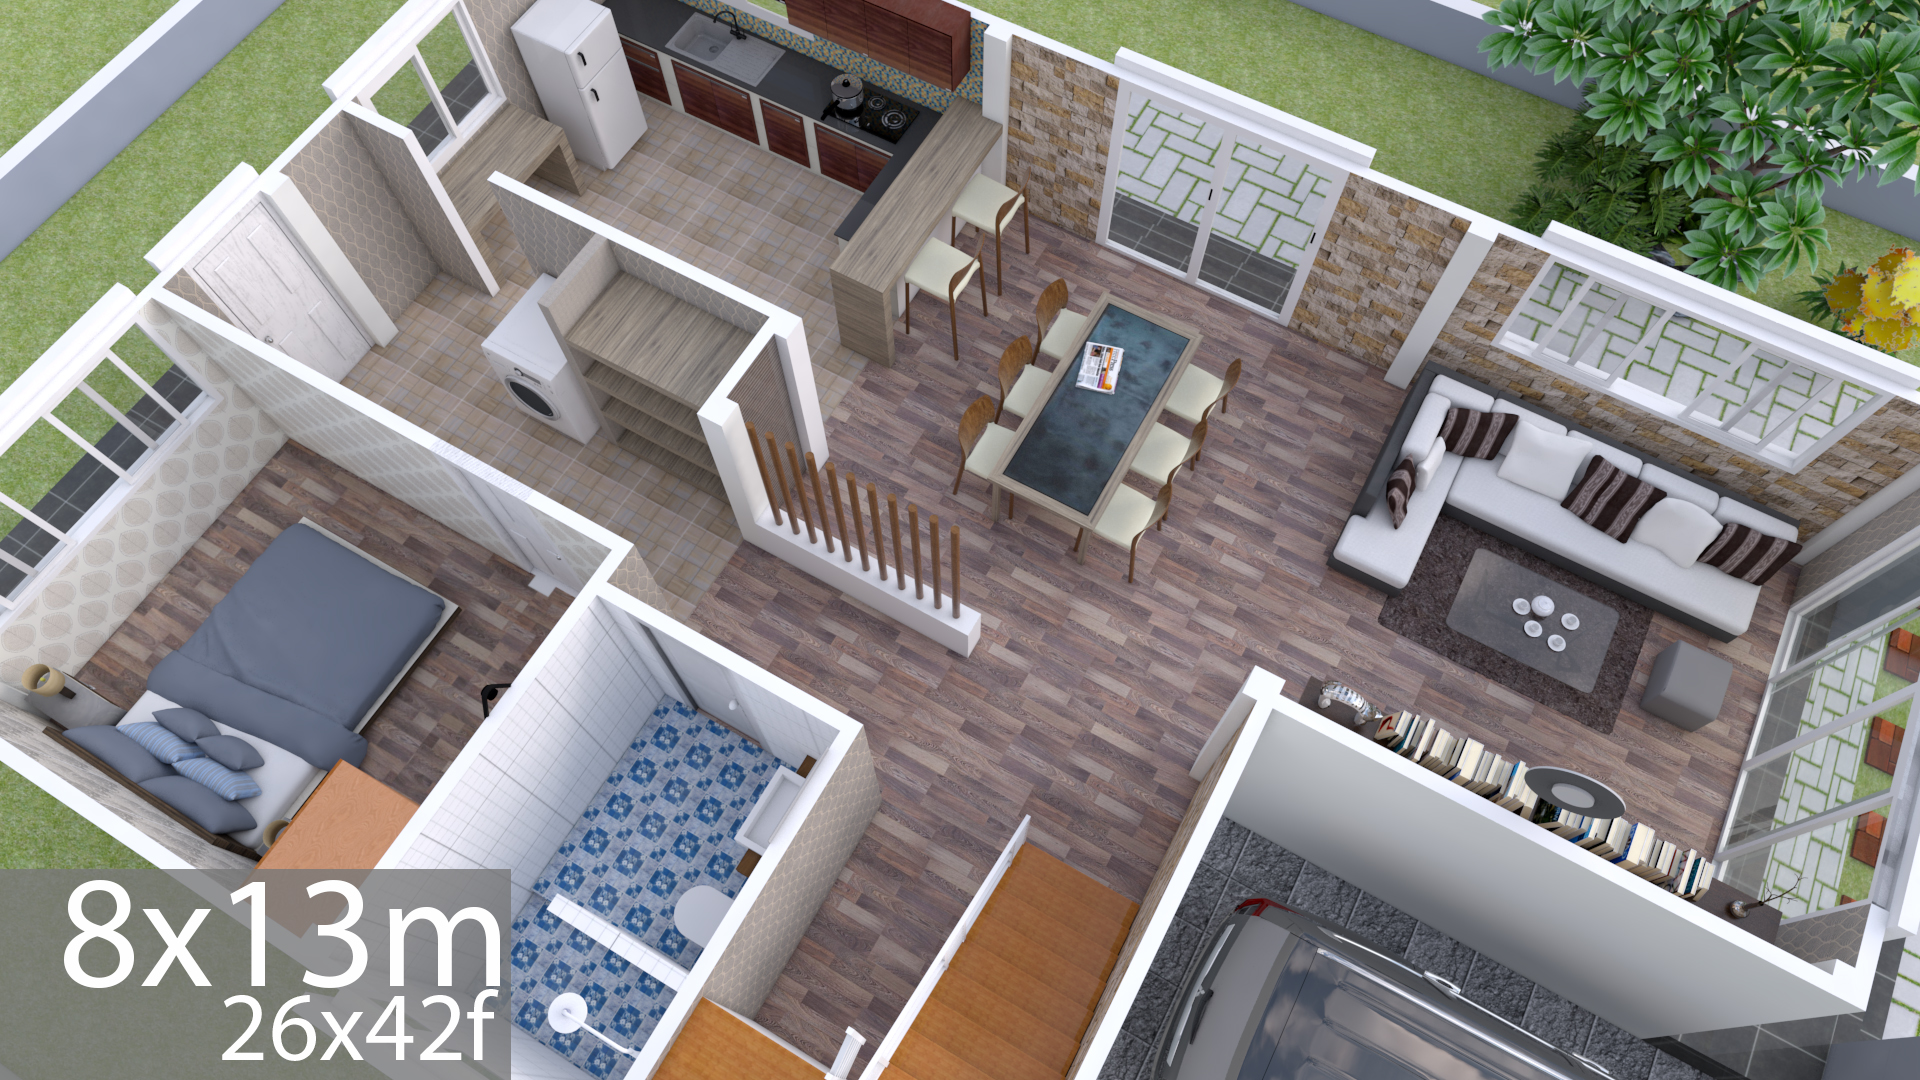 Plan 3D Interior Design Home Plan 8x13m Full Plan 3Beds - Samphoas.Com